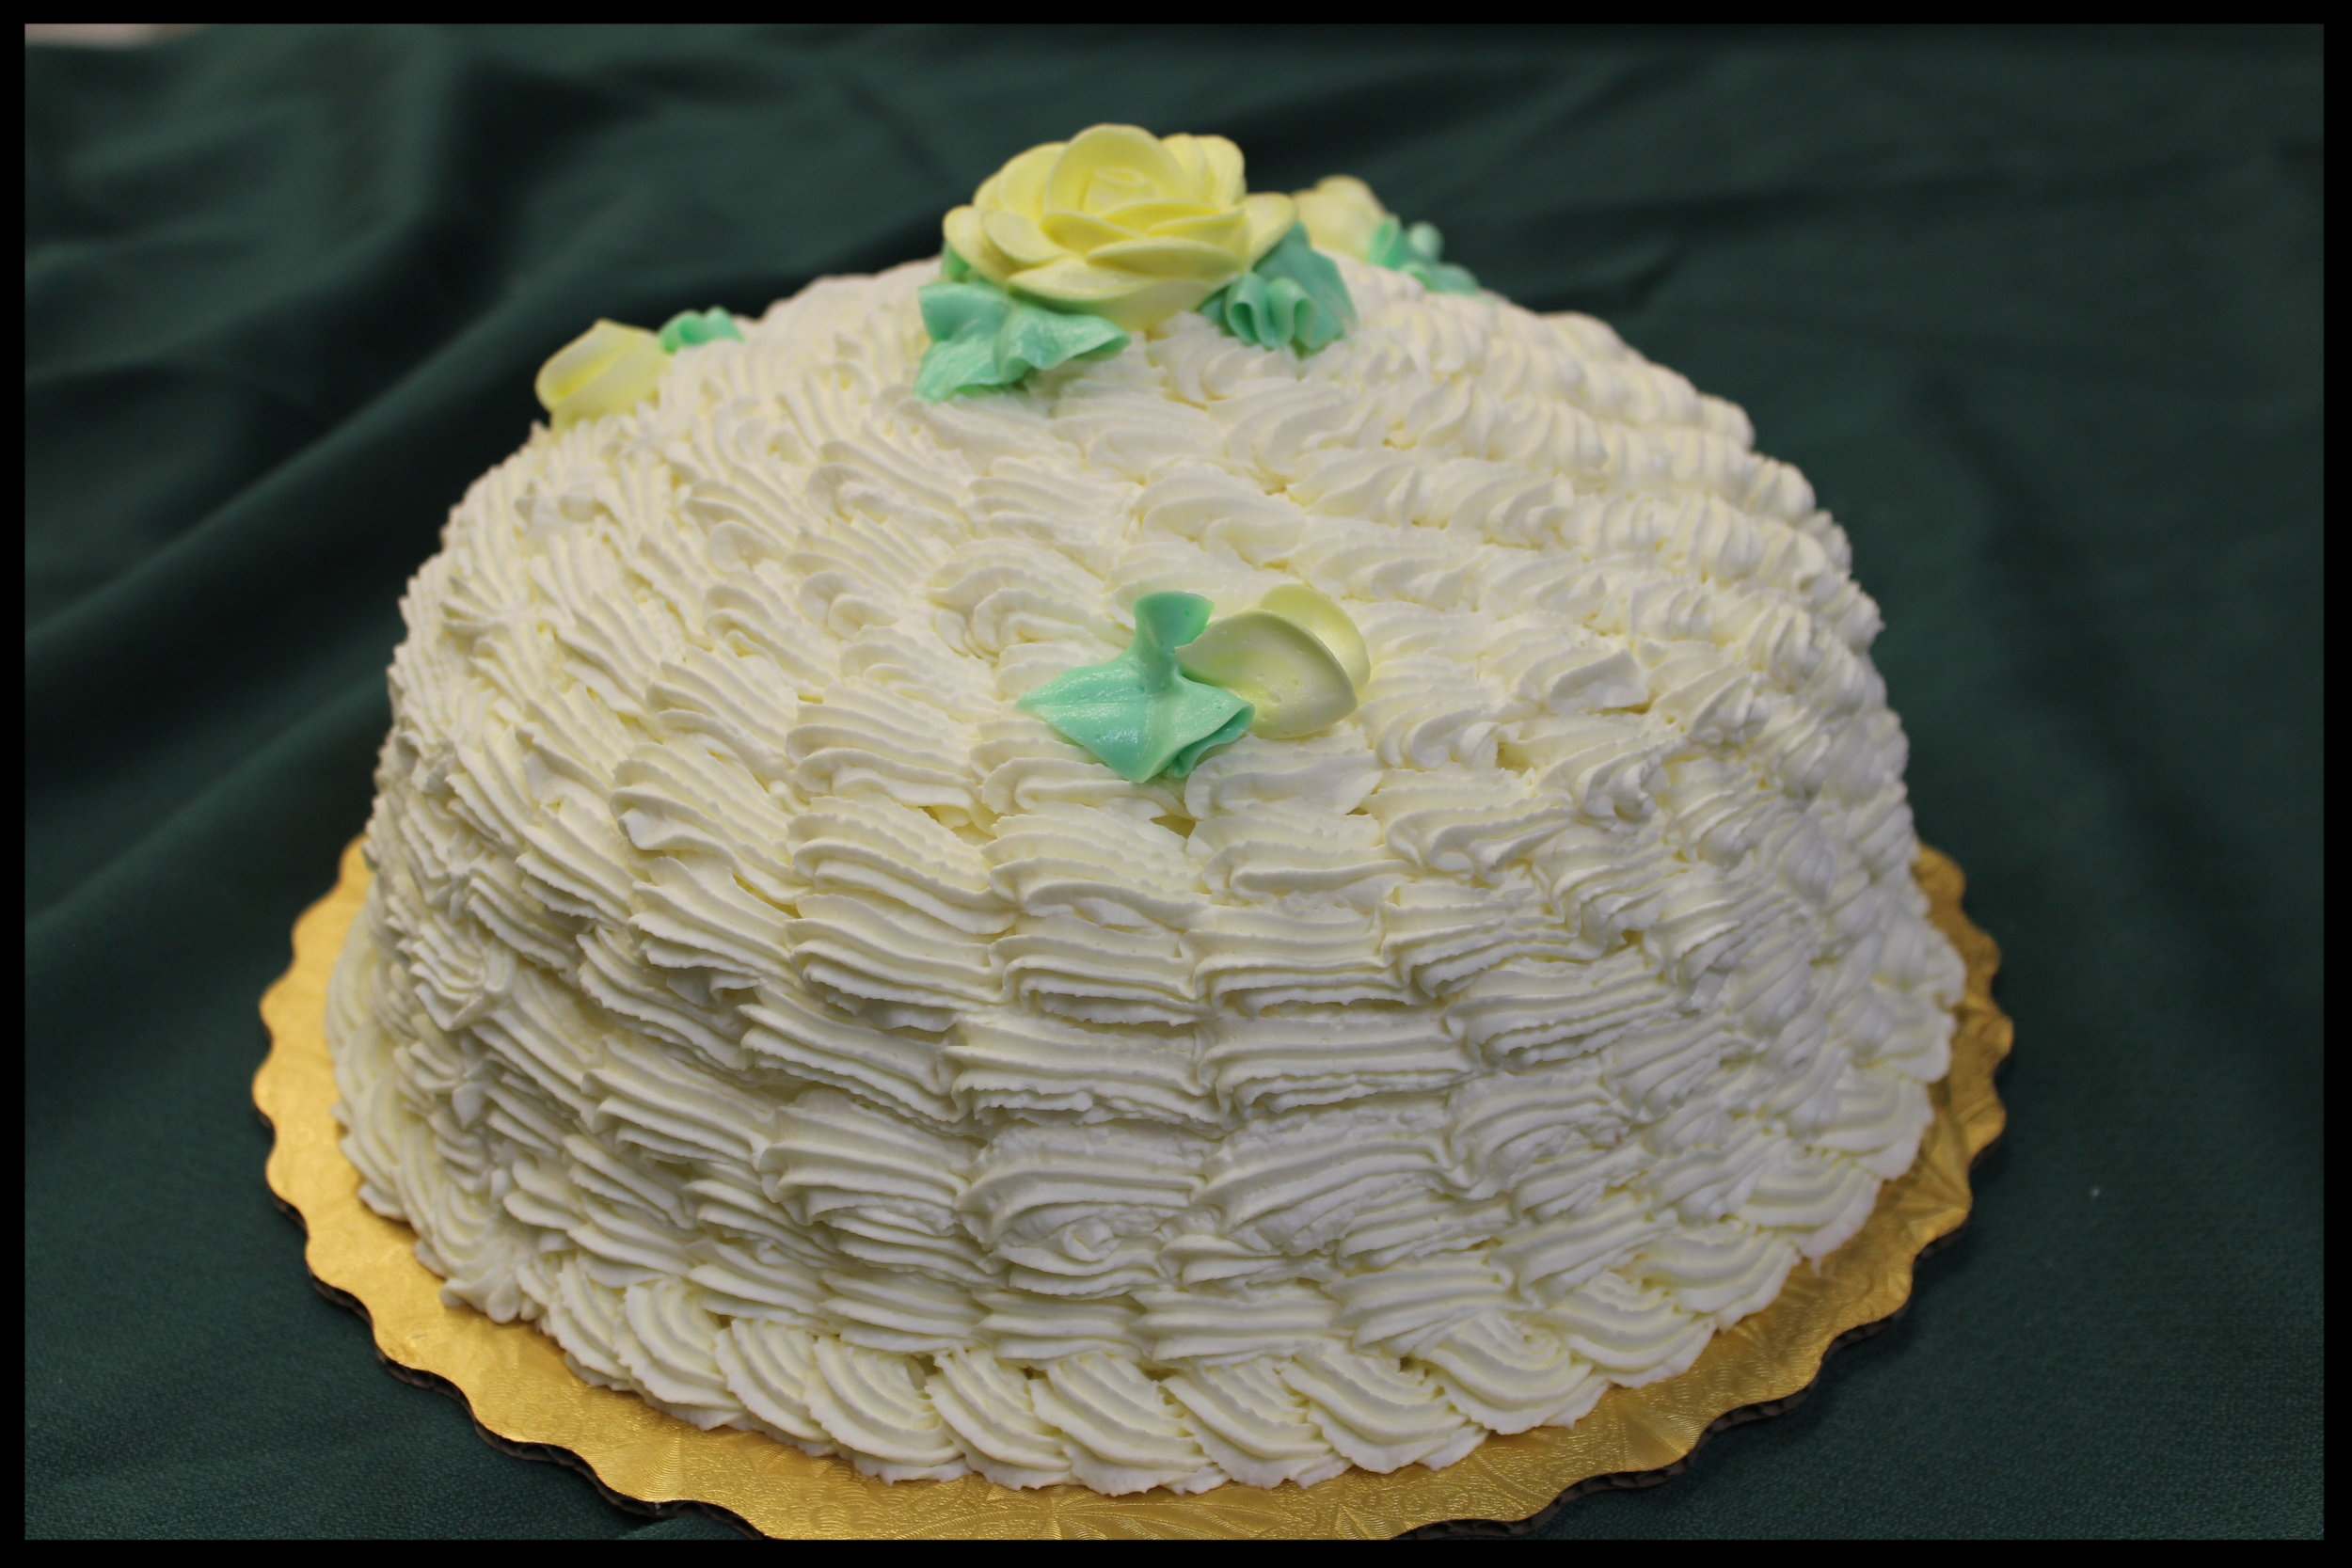 Zuppa Inglese - Vanilla or Rum sponge cake in a dome shape with extra fillings and whipped cream frosting. In Italian it means